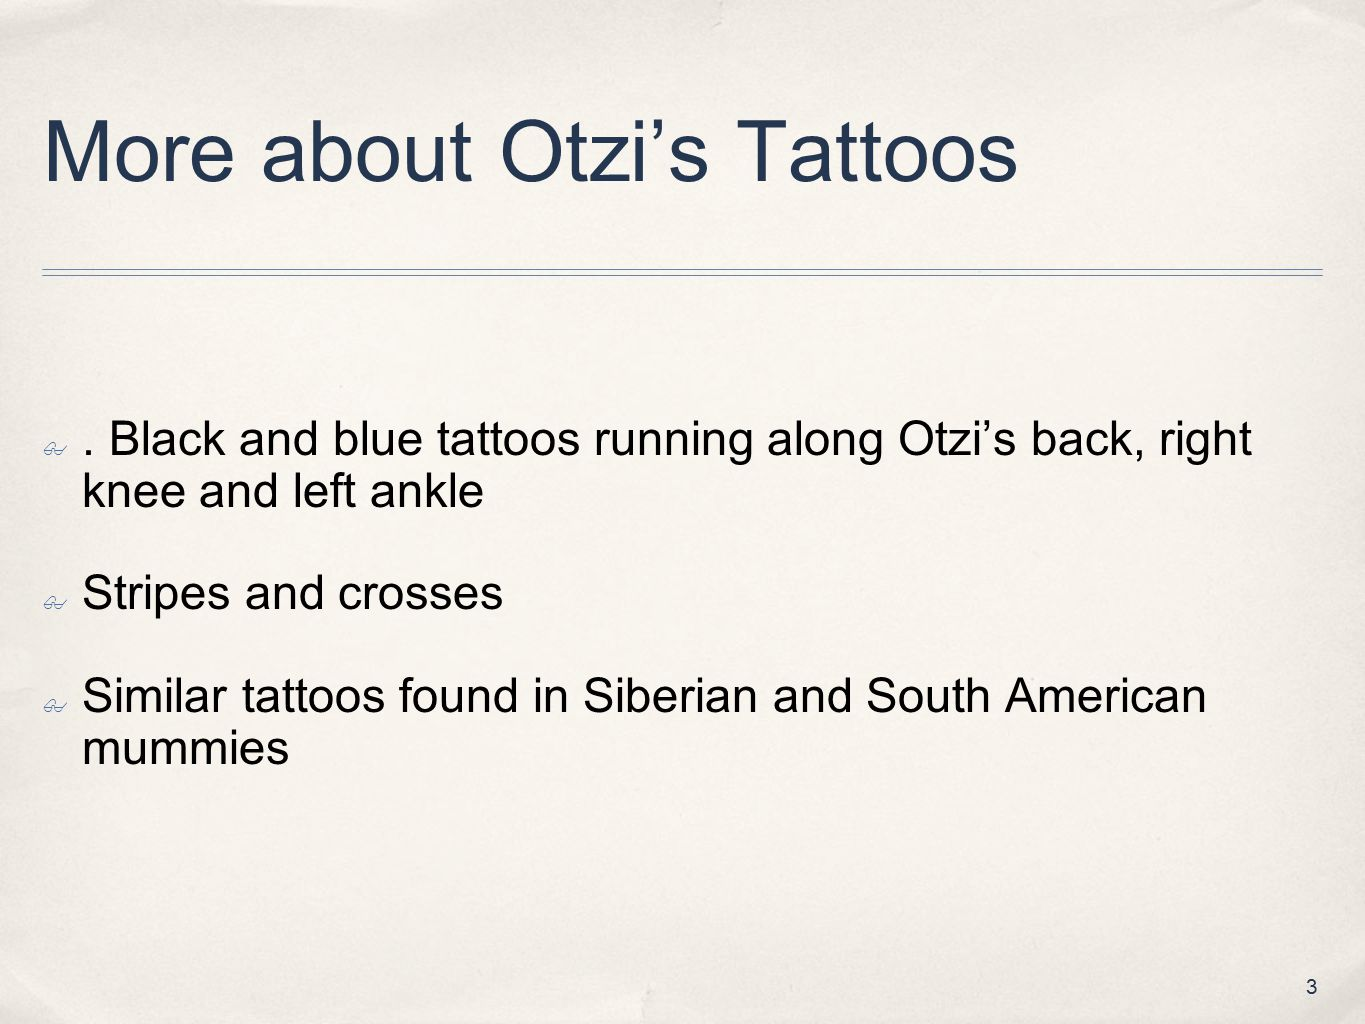 More about Otzi's Tattoos